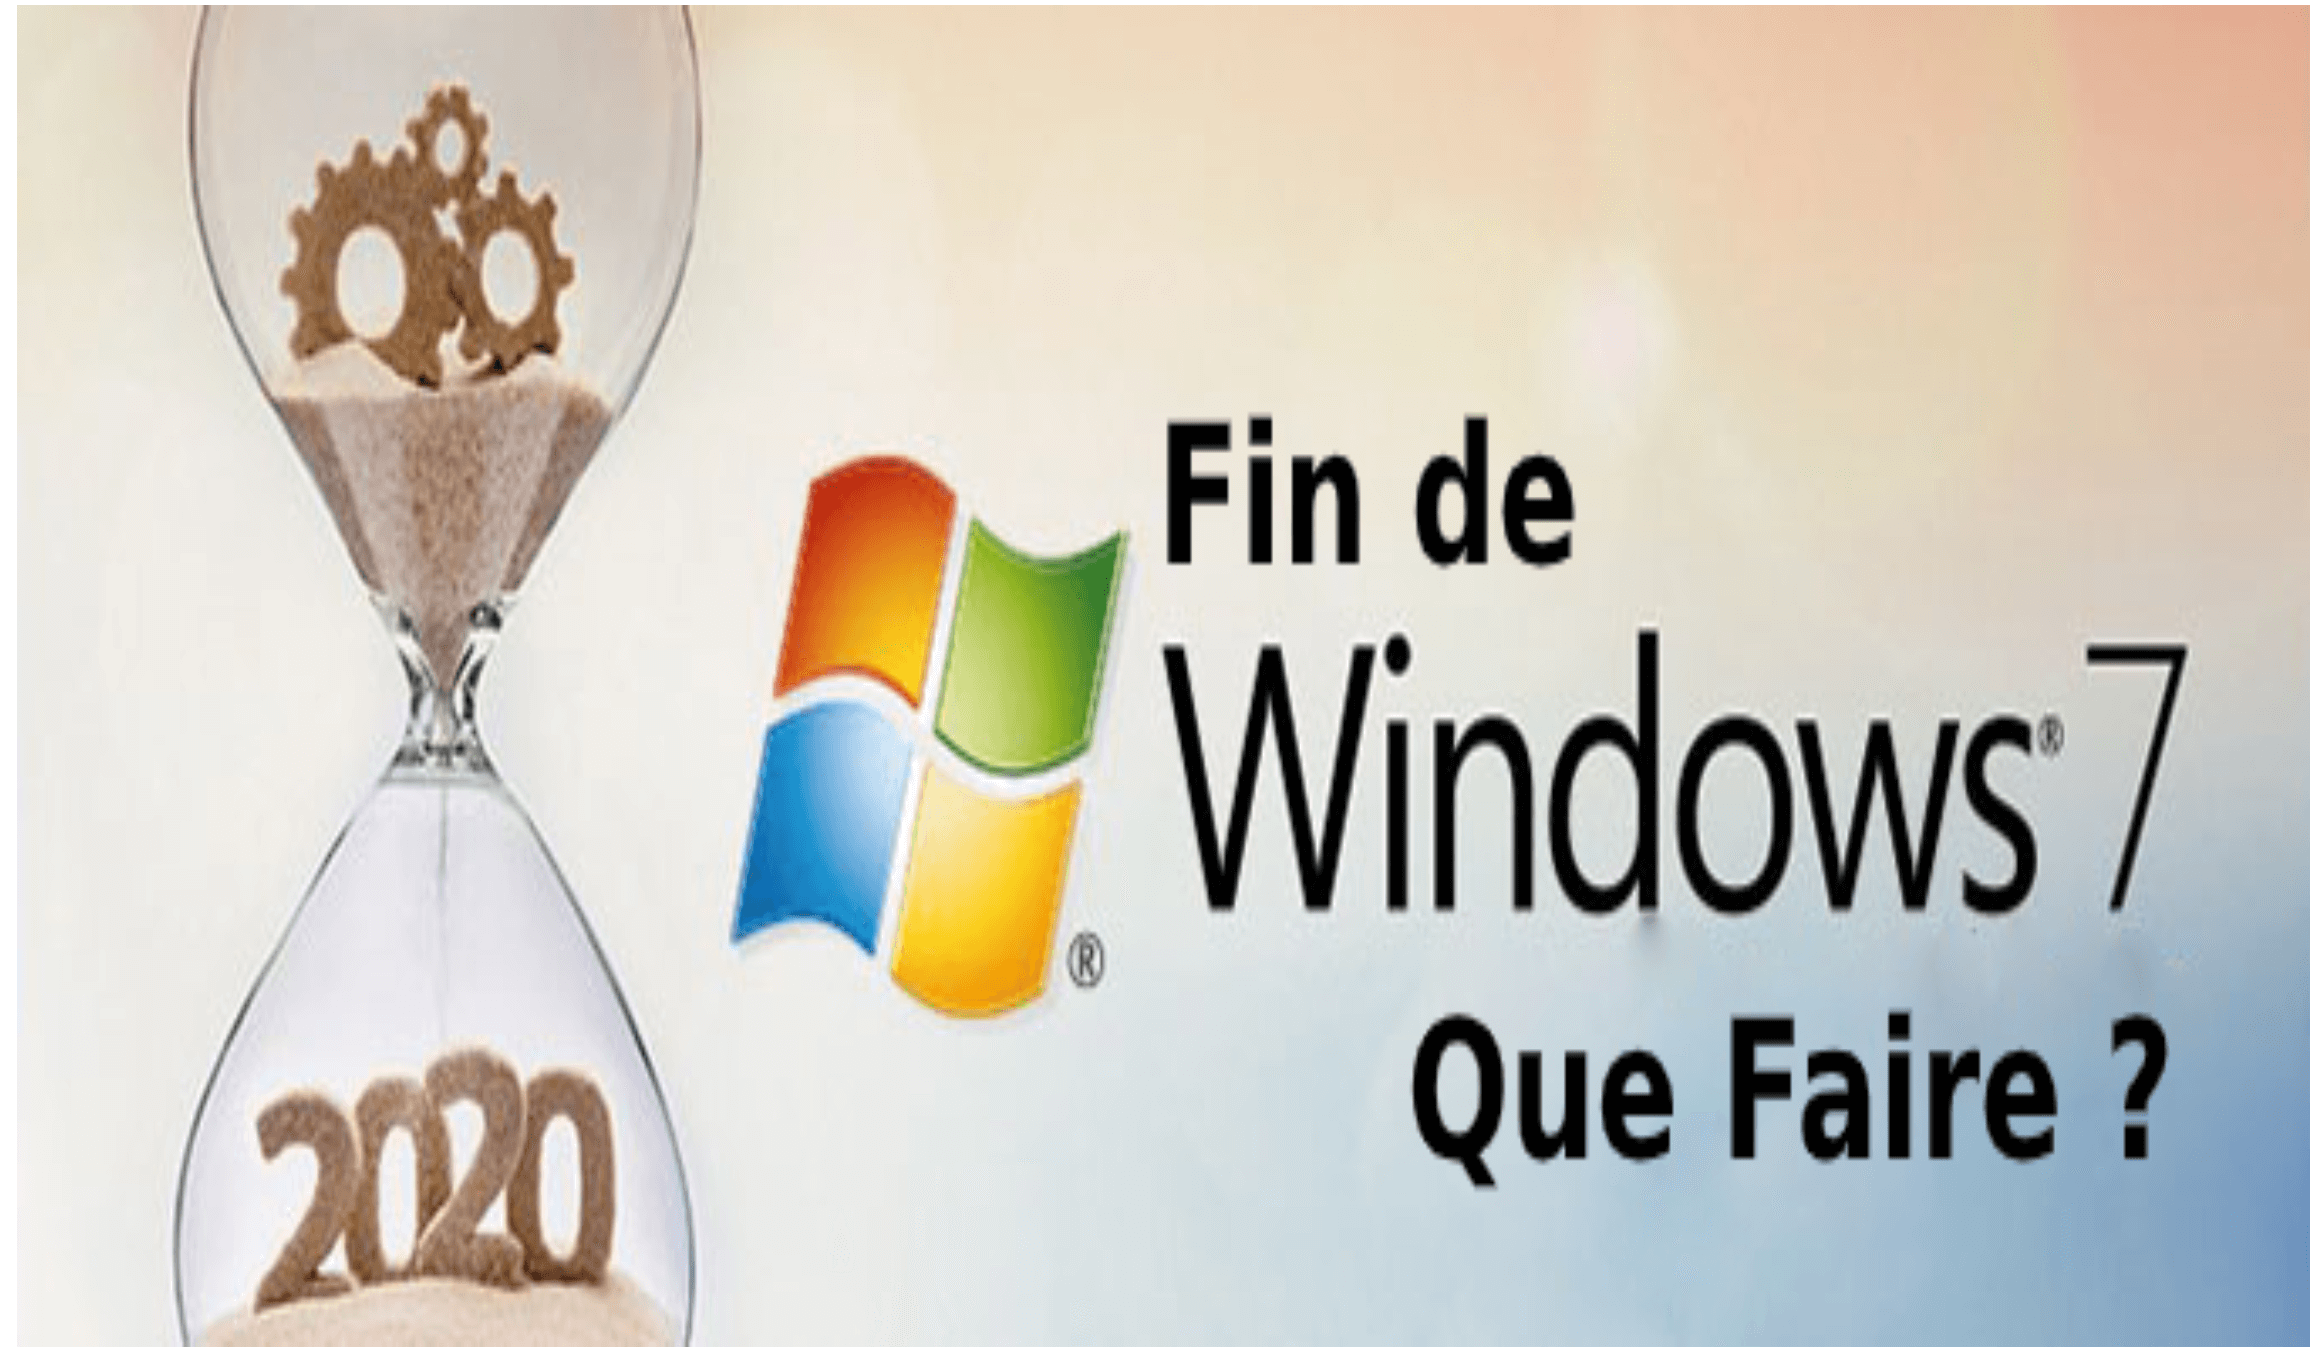 Fin de Windows 7 Que Faire, garder windows 7 après 2020, peut on rester sur windows 7 en 2020, fin de windows 7 que faire, garder windows 7 ou passer a windows 10, windows 7 ou windows 10 avis, fin de windows 7 forum, windows 7 vers windows 10, comment passer de windows 7 à 10 gratuitement